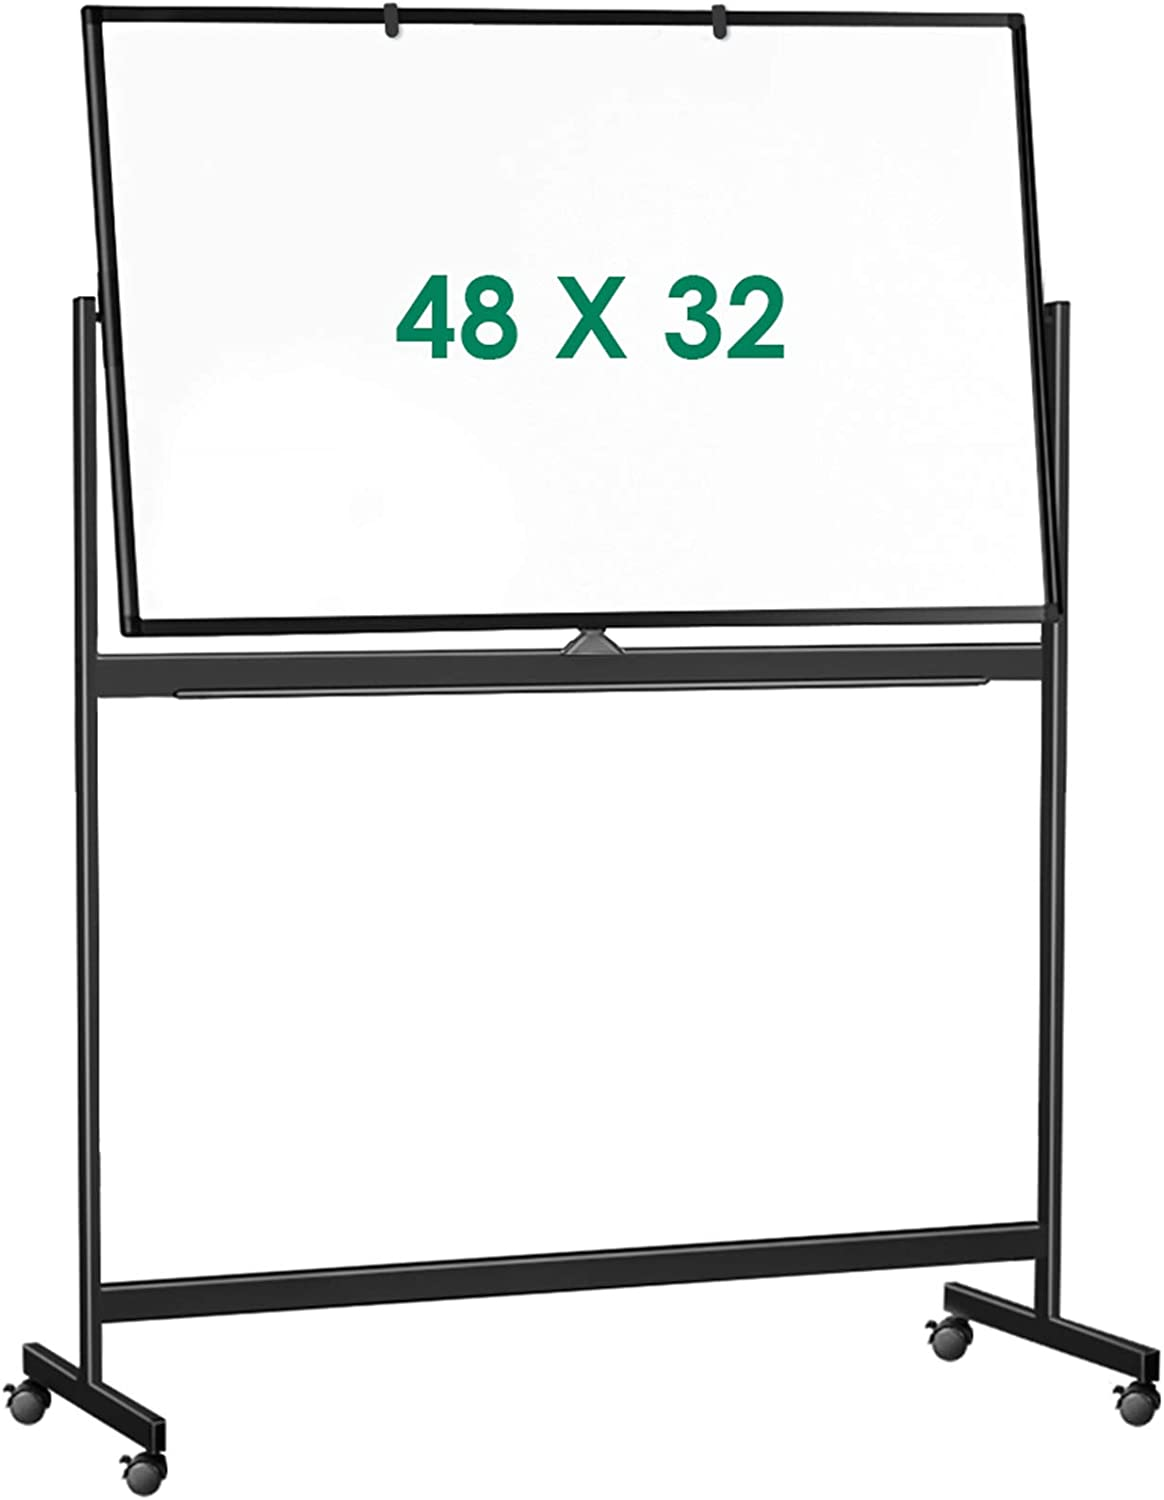 Double Sided Mobile Whiteboard, 48 x 32 inches Large Rolling White Board, maxtek Reversible Magnetic Dry Erase Board Black Easel Standing Whiteboard on Wheels for Home Office Classroom